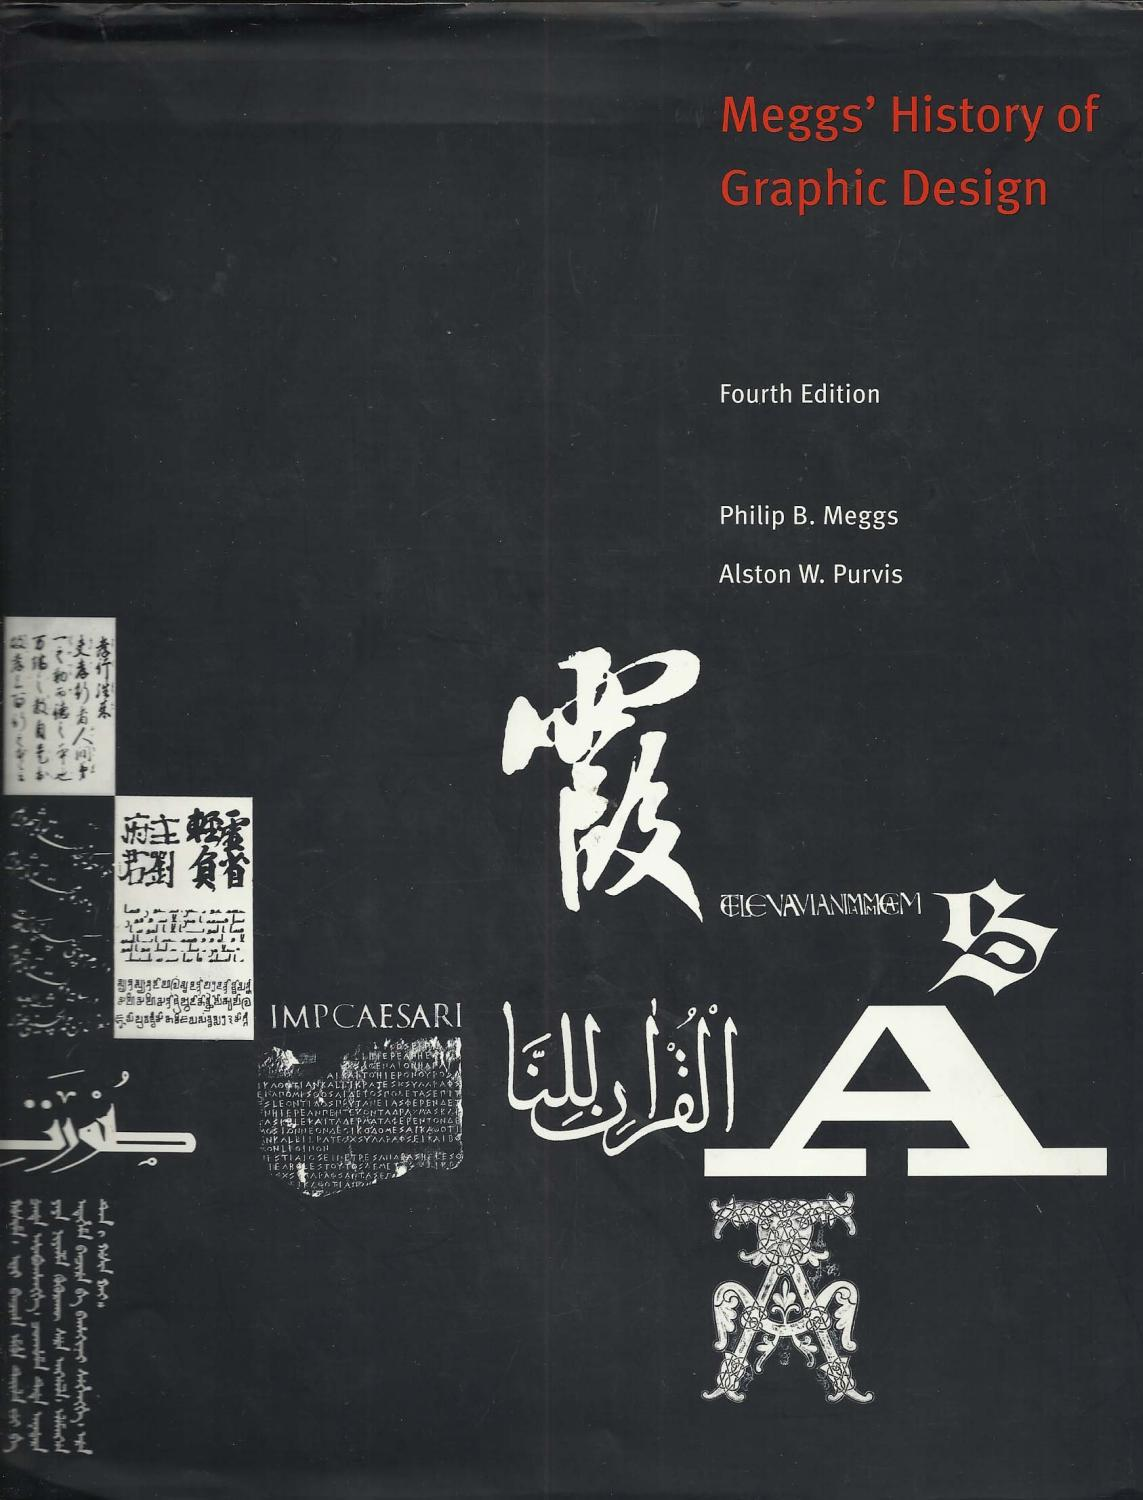 meggs' history of graphic design - fourth editionmeggs, philip b